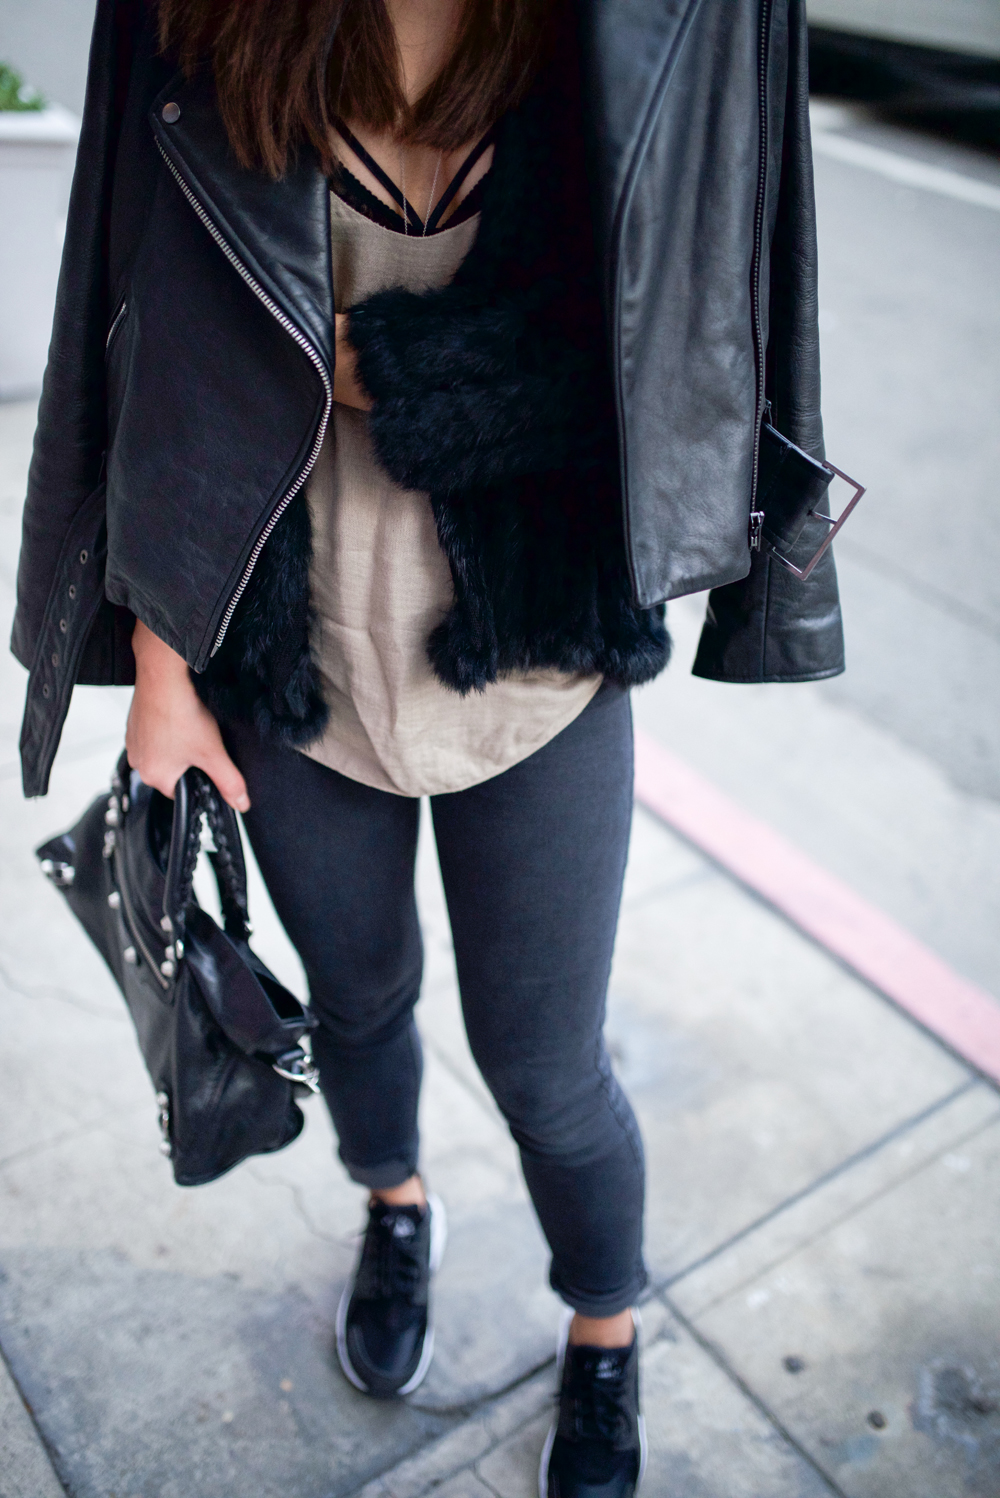 Neon Blush, Heartloom fur jacket, UO tank, Cosabella bra, dark gray denim skinnies, Nike Air Huaraches white and black sneakers, Balenciaga classic city bag, Kate Spade Saturday leather jacket